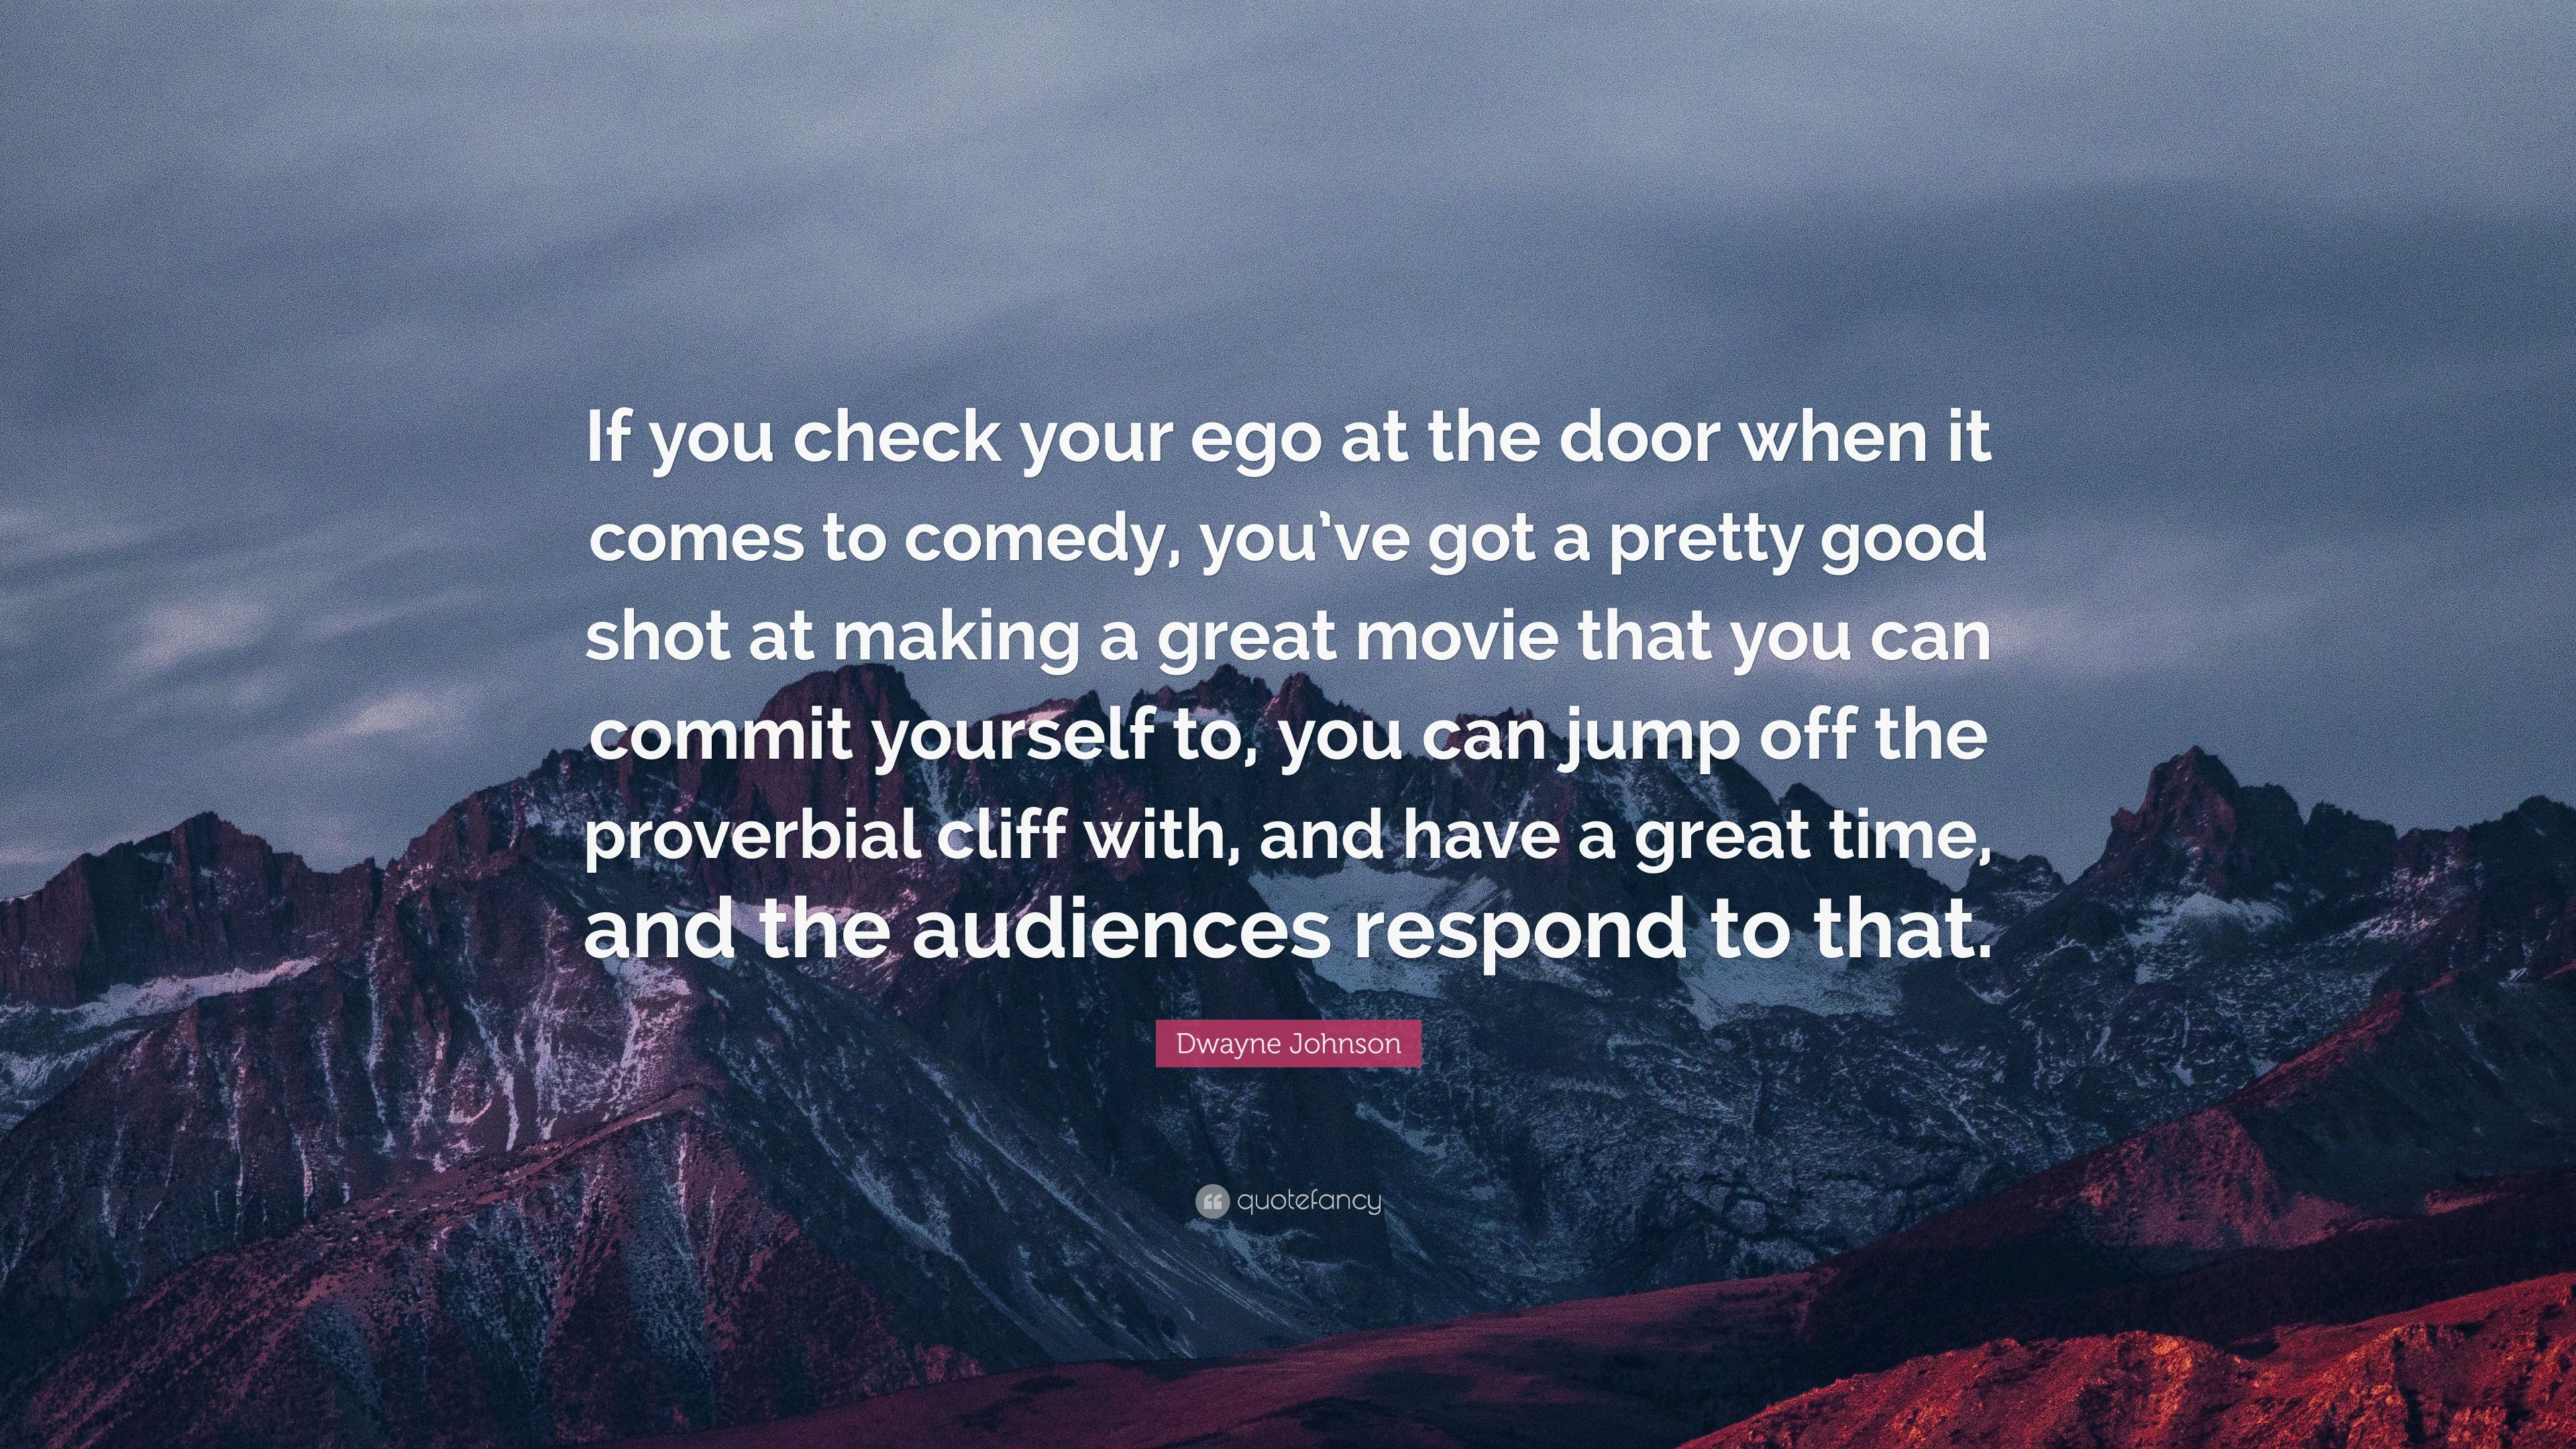 Dwayne Johnson Quote u201cIf you check your ego at the door when it comes & Dwayne Johnson Quote: u201cIf you check your ego at the door when it ...